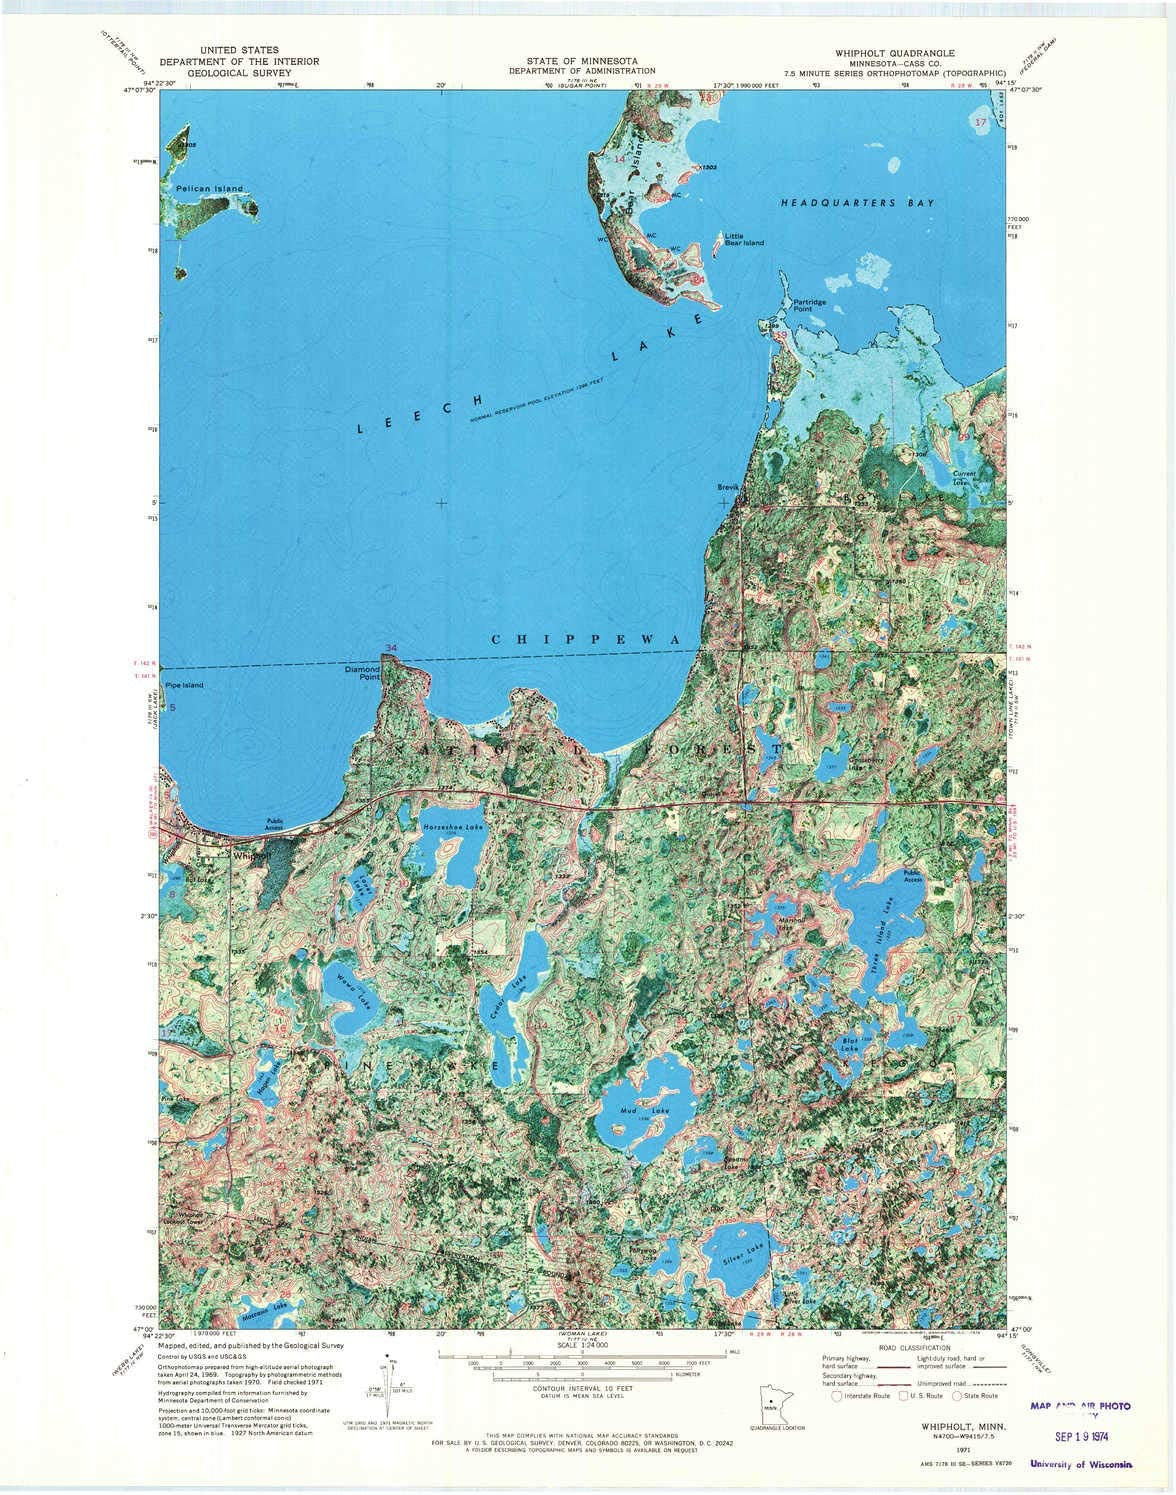 Sale YellowMaps Beauty products Whipholt MN topo map 7.5 X Scale Minute 1:24000